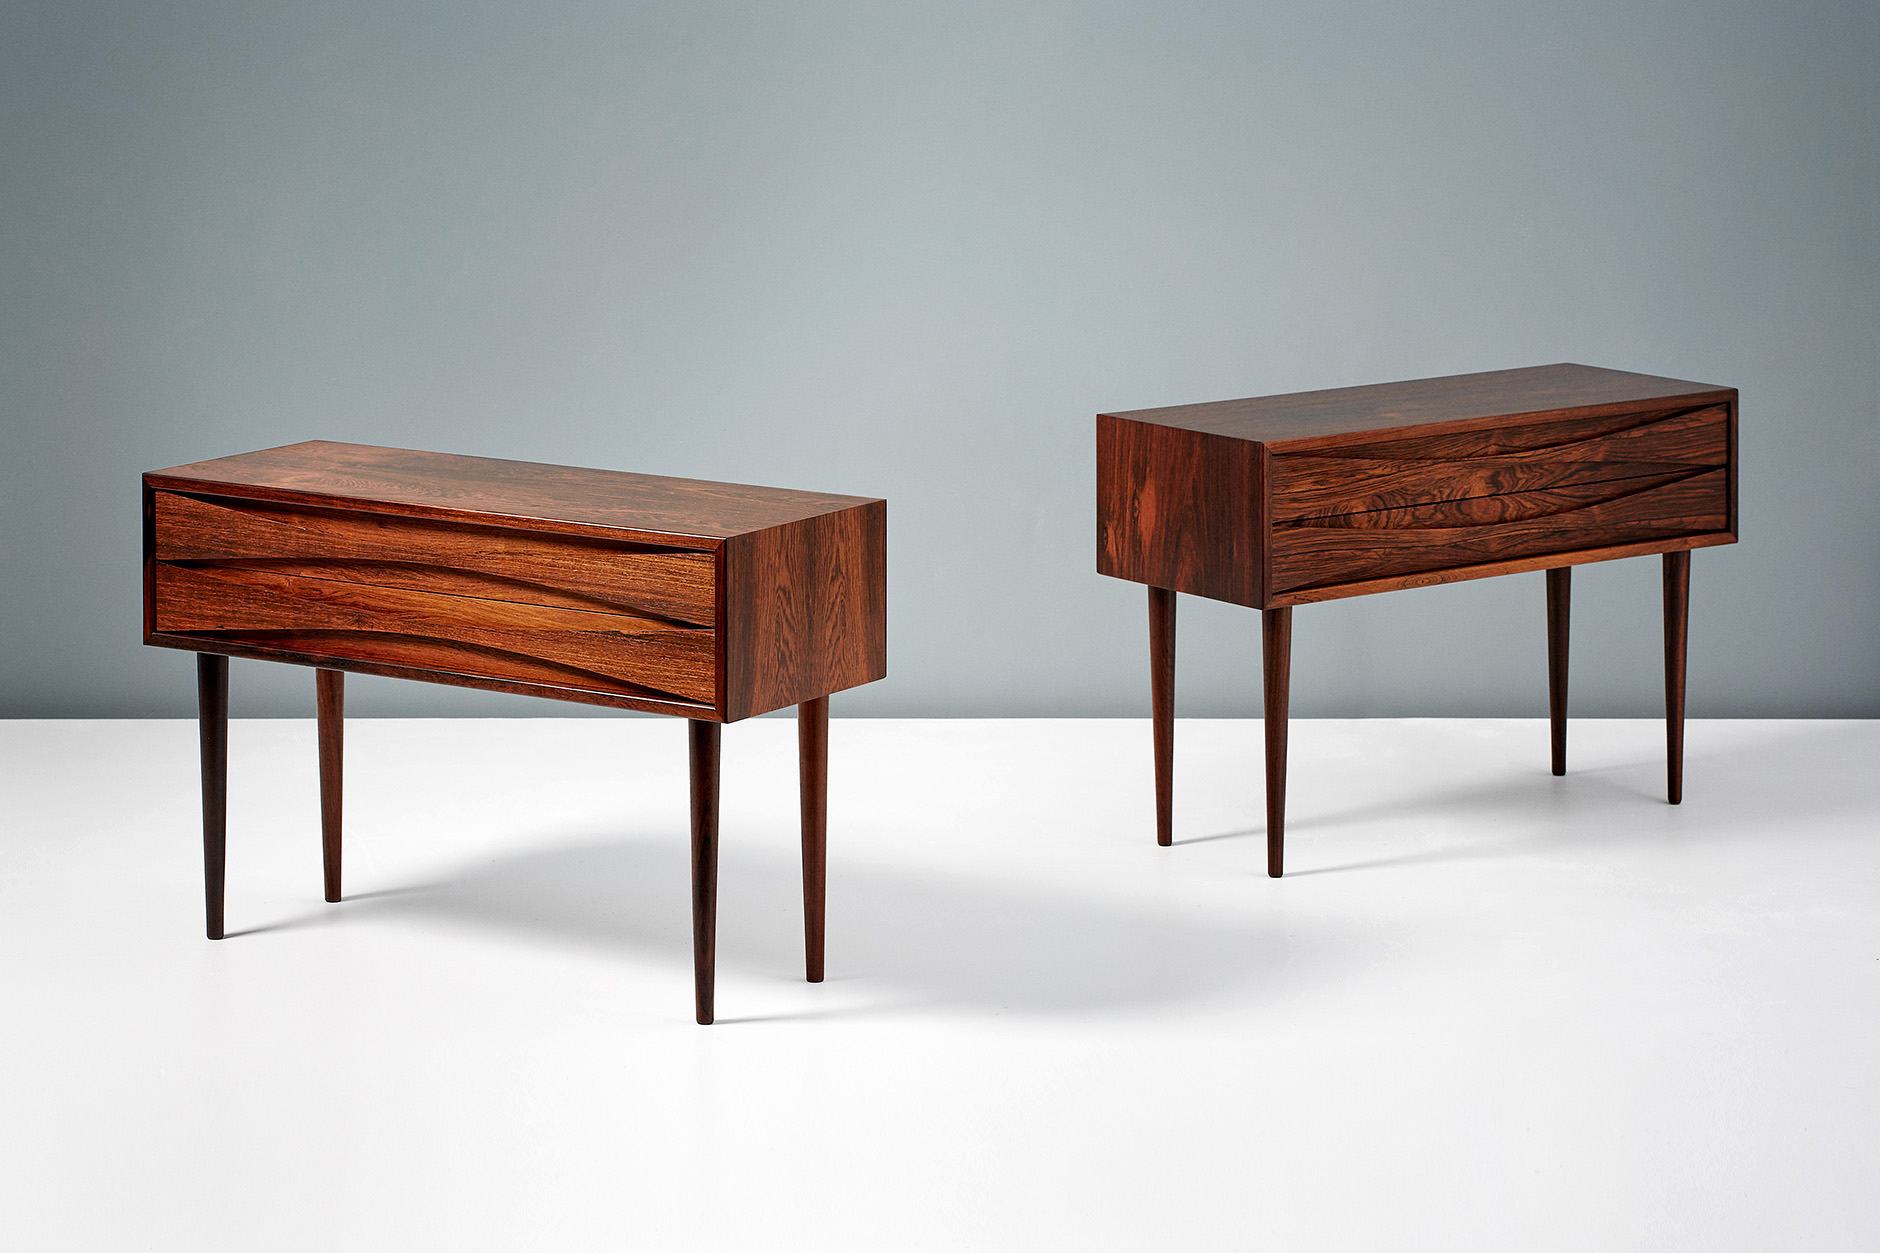 Niels Clausen  Bedside Cabinets, Rosewood